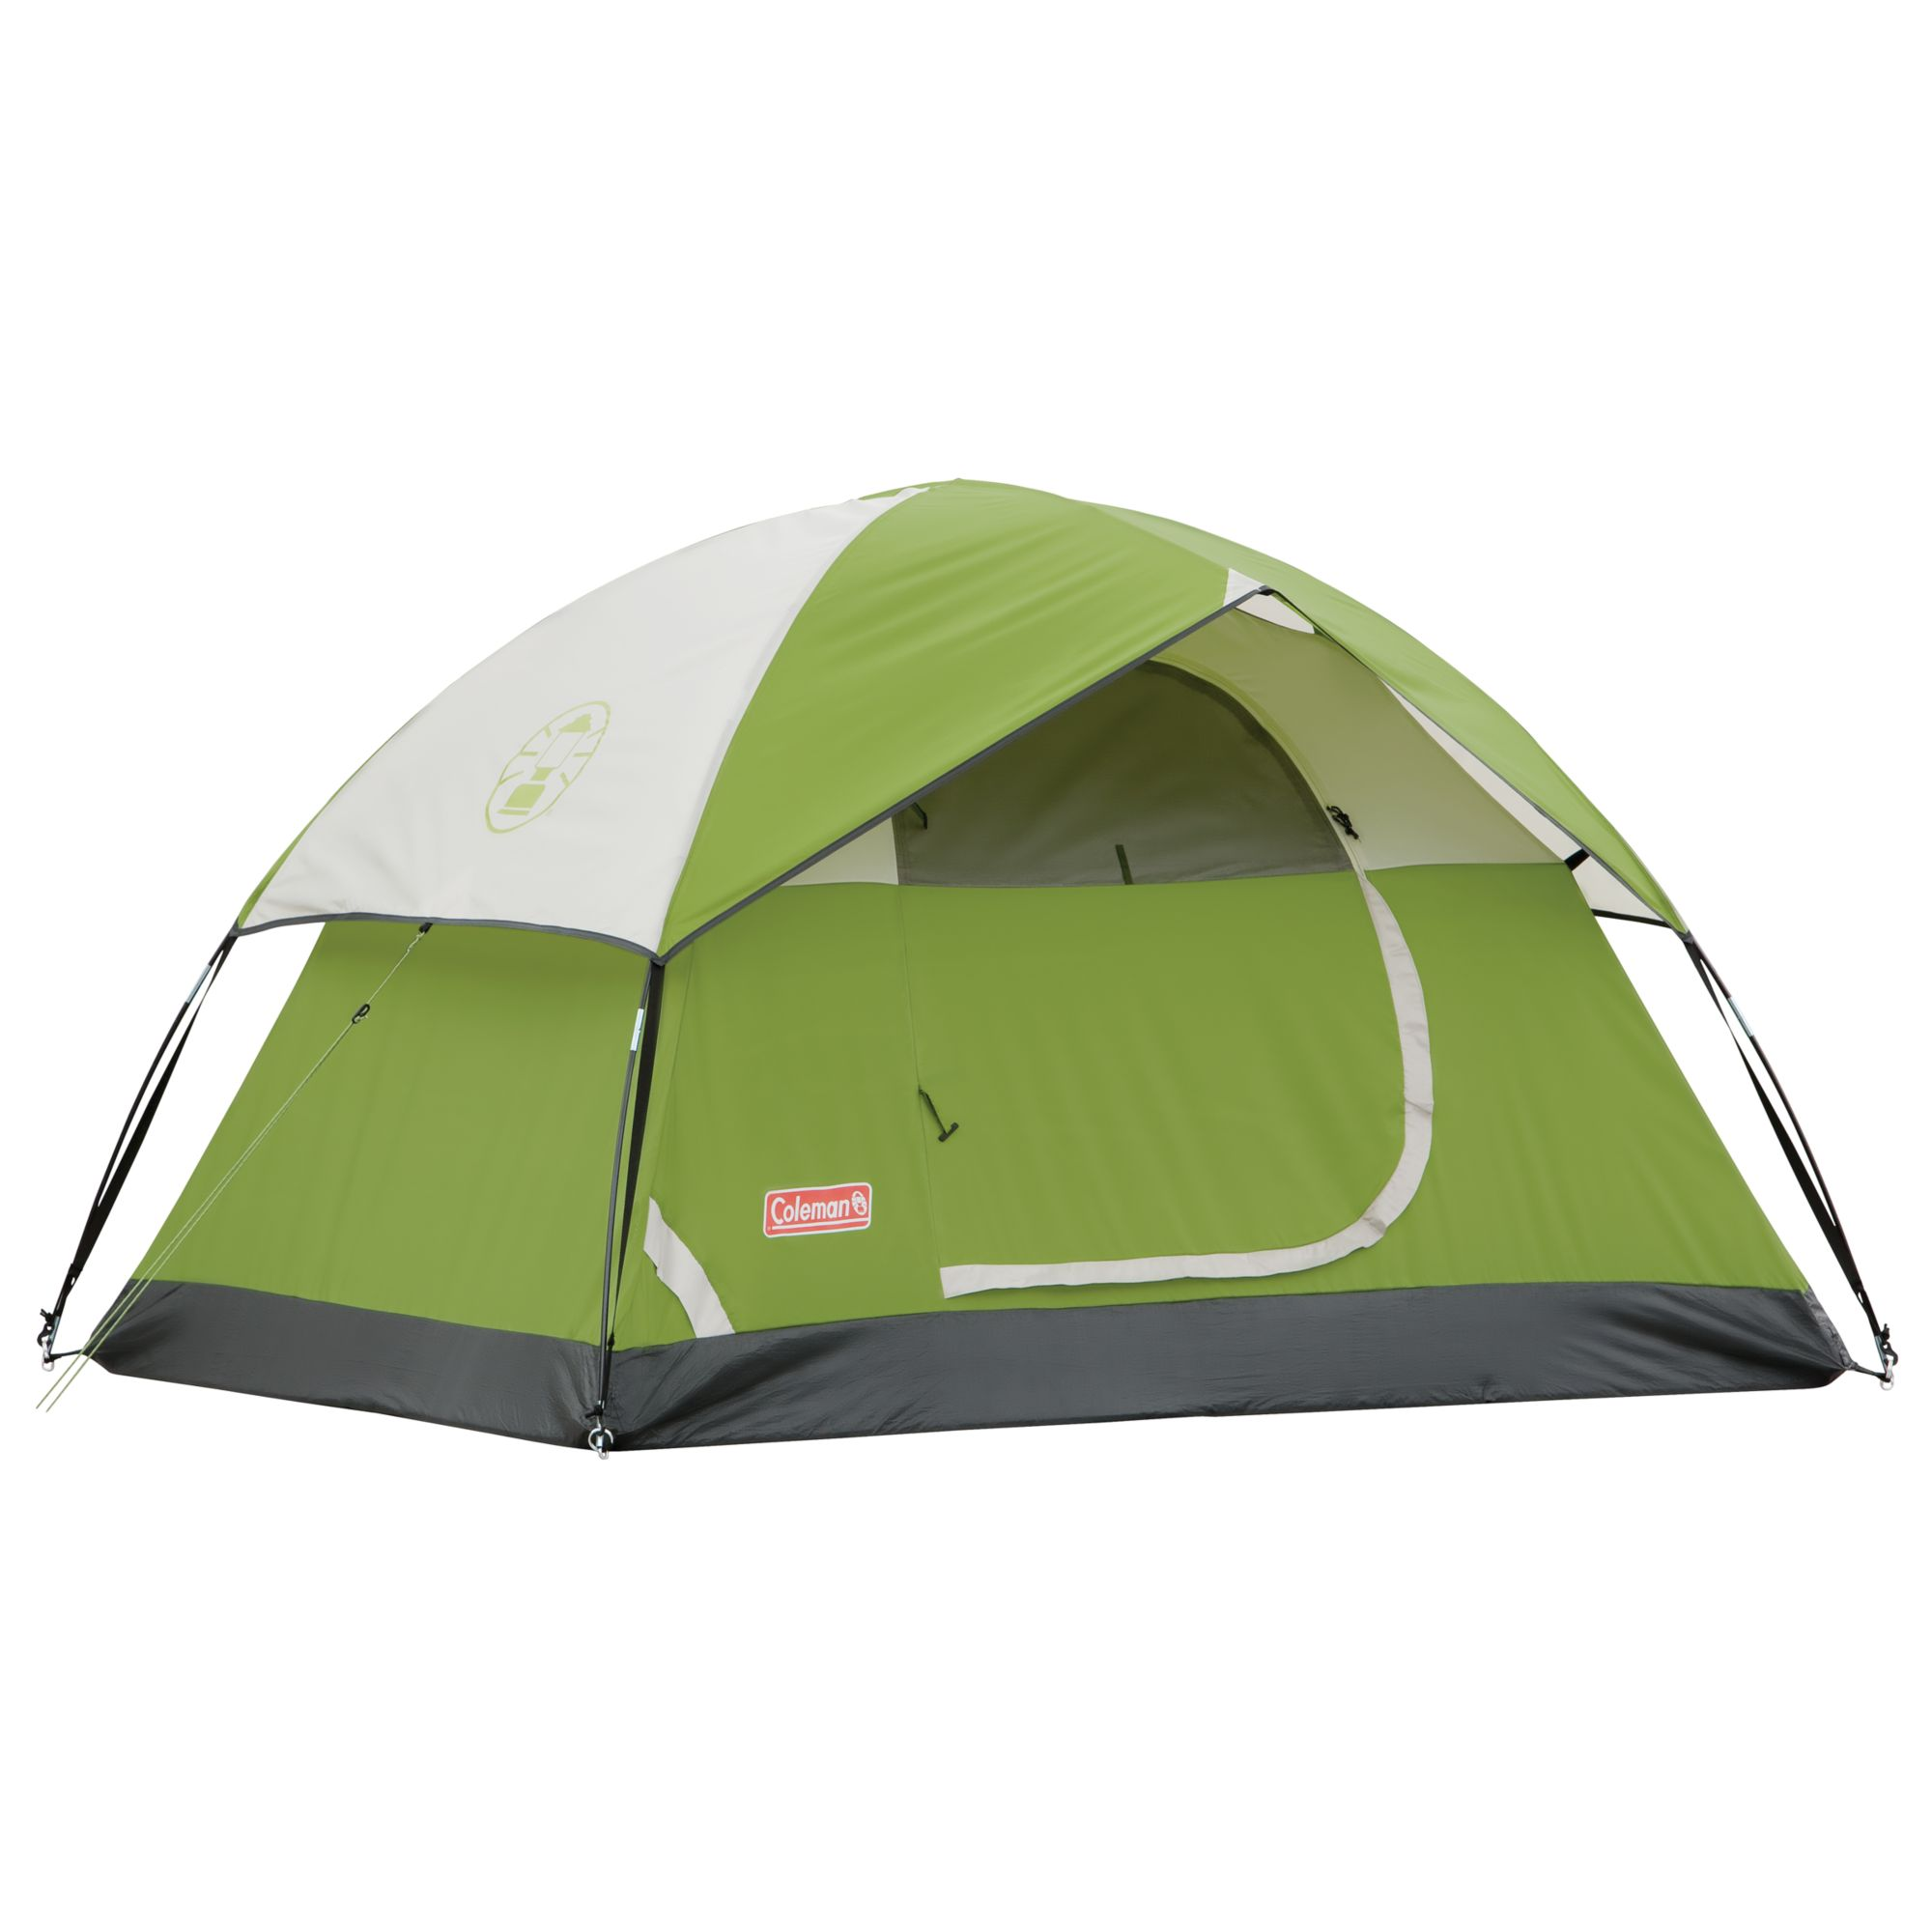 Sundome 2 Person Tent  sc 1 st  Outdoor Intensity : slumberjack trail tent 2 - memphite.com